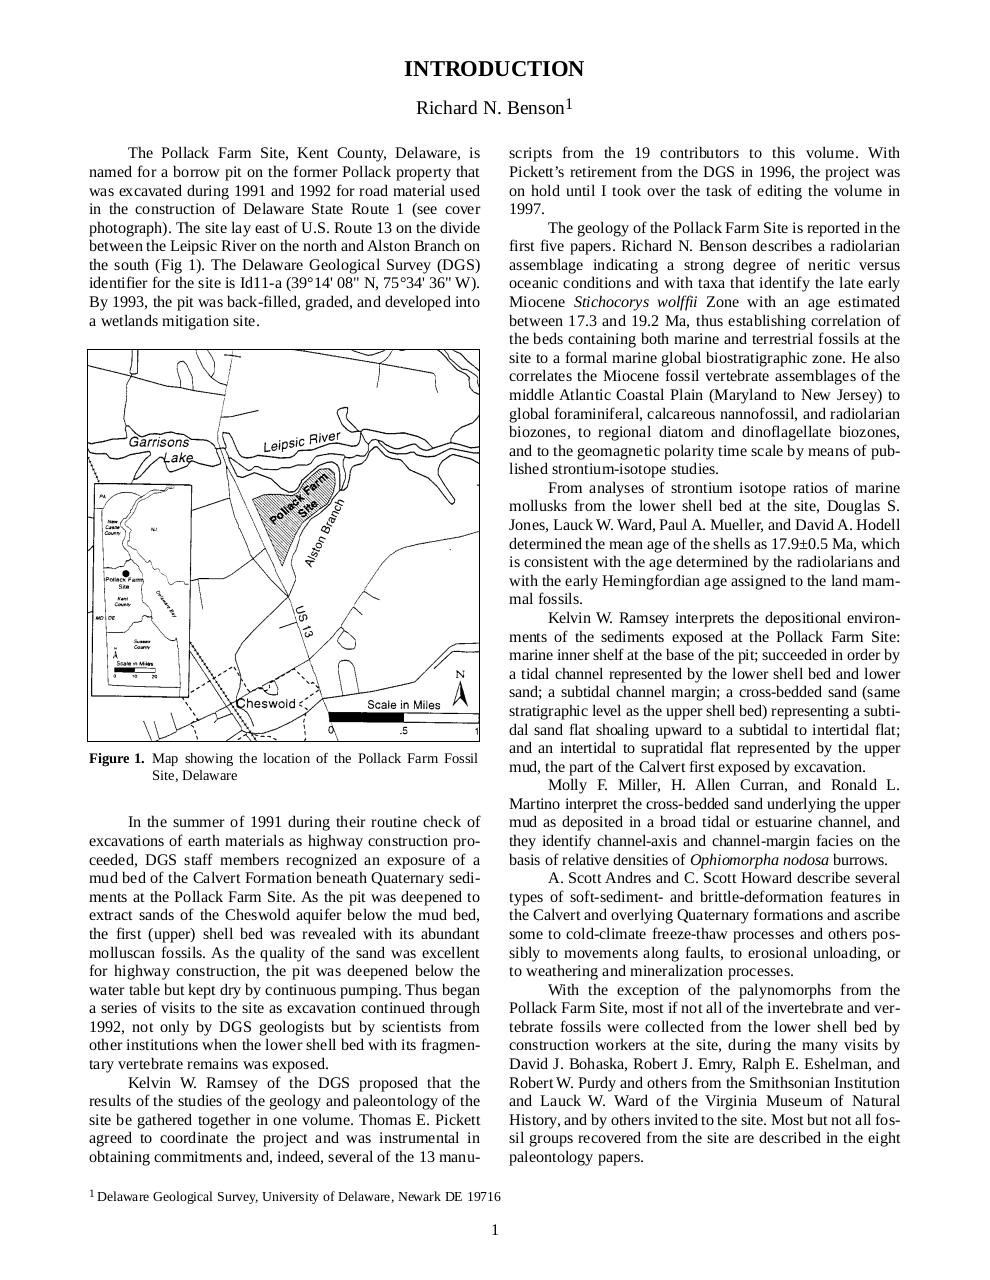 Pollack farm fossil site.pdf - page 4/185